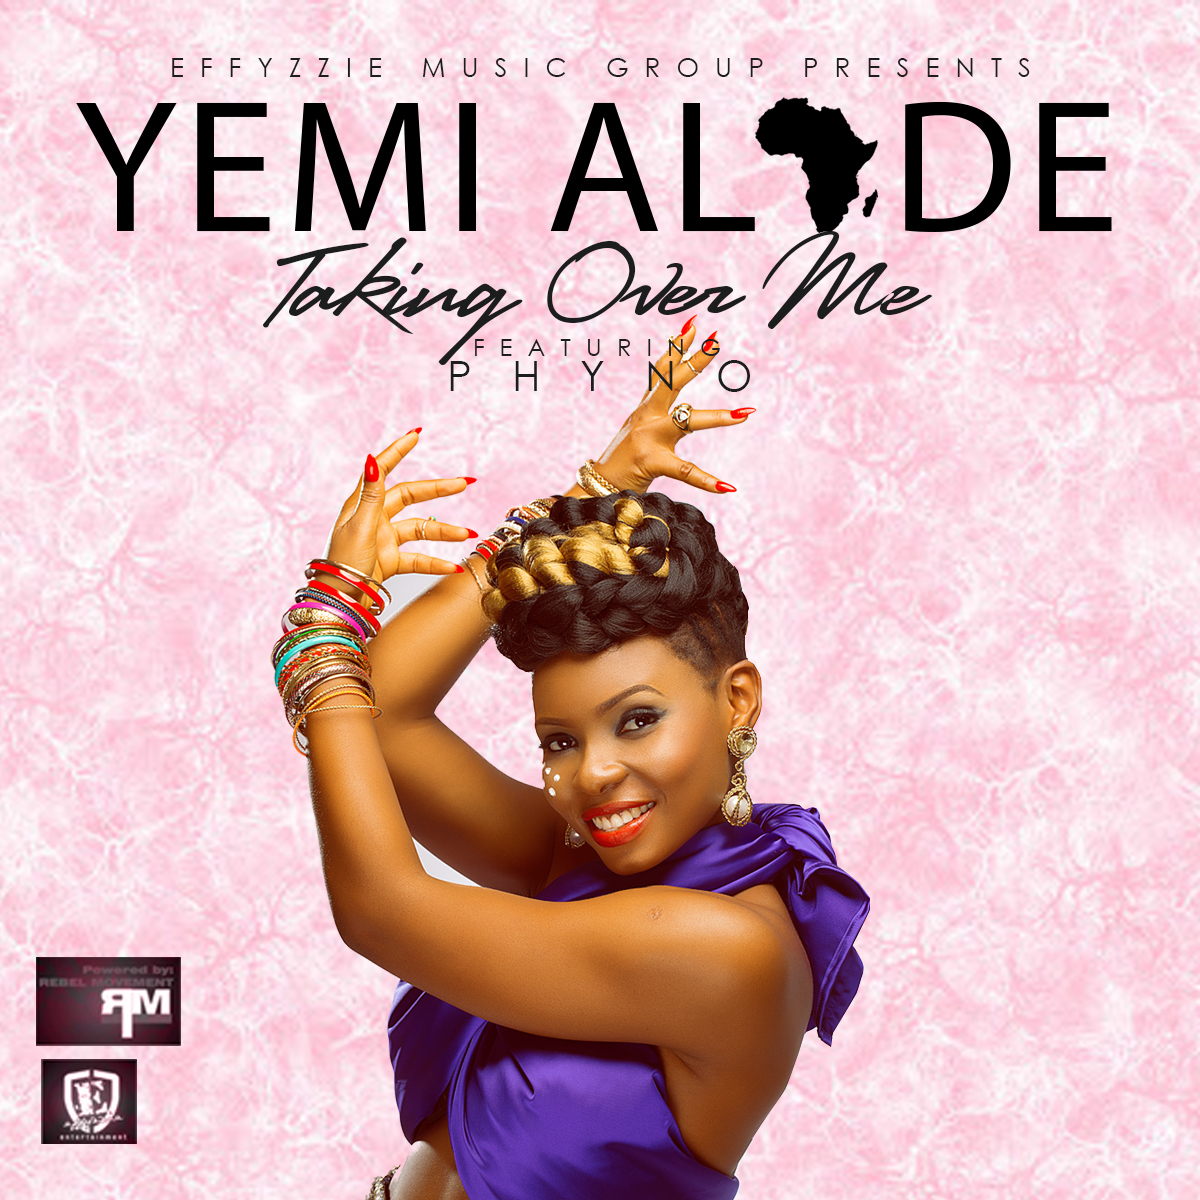 Yemi Alade - Taking Over Me feat. Phyno -Art